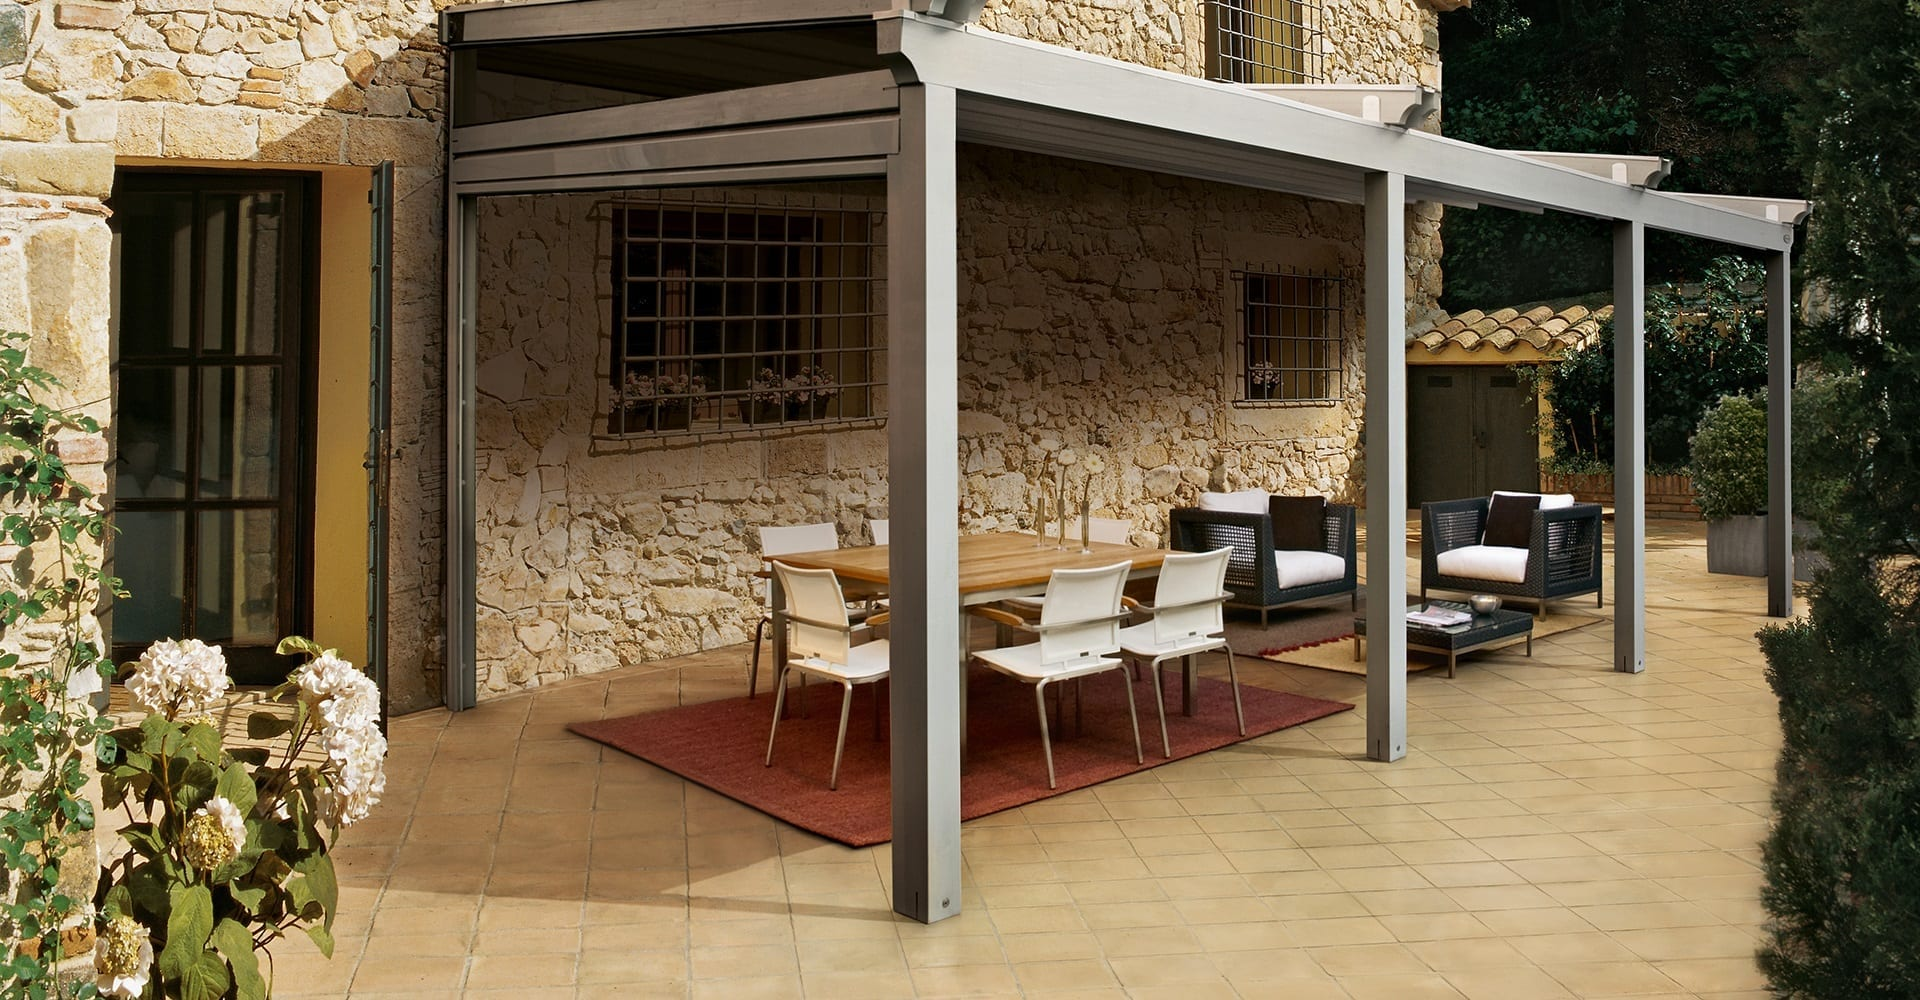 Corradi Outdoor Living Spaces - ABC Blinds & Drappery on Corradi Outdoor Living id=31250